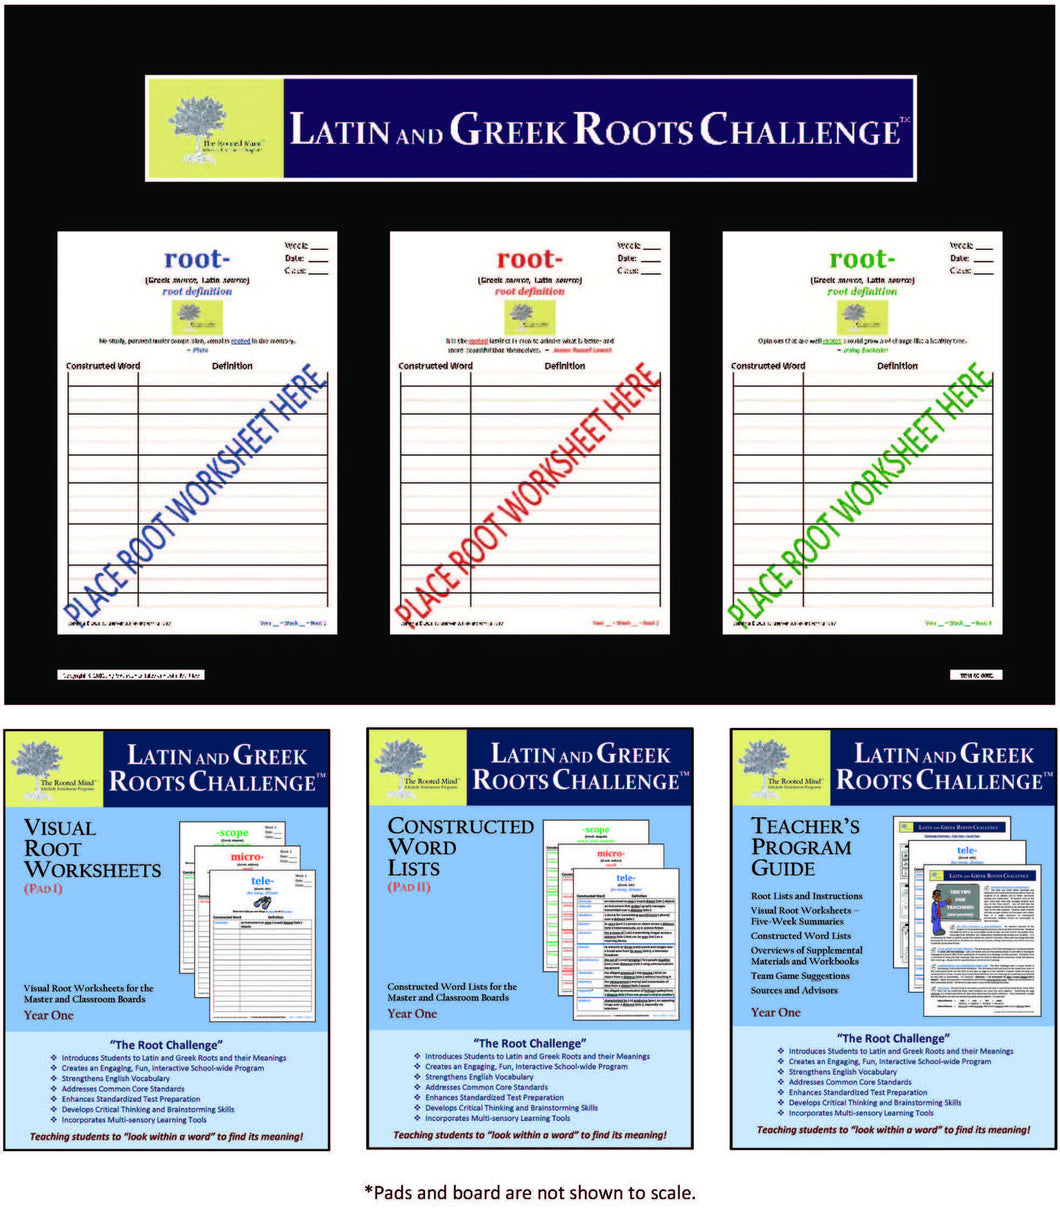 Latin and Greek Roots Challenge - Classroom Board Kit - Year 1